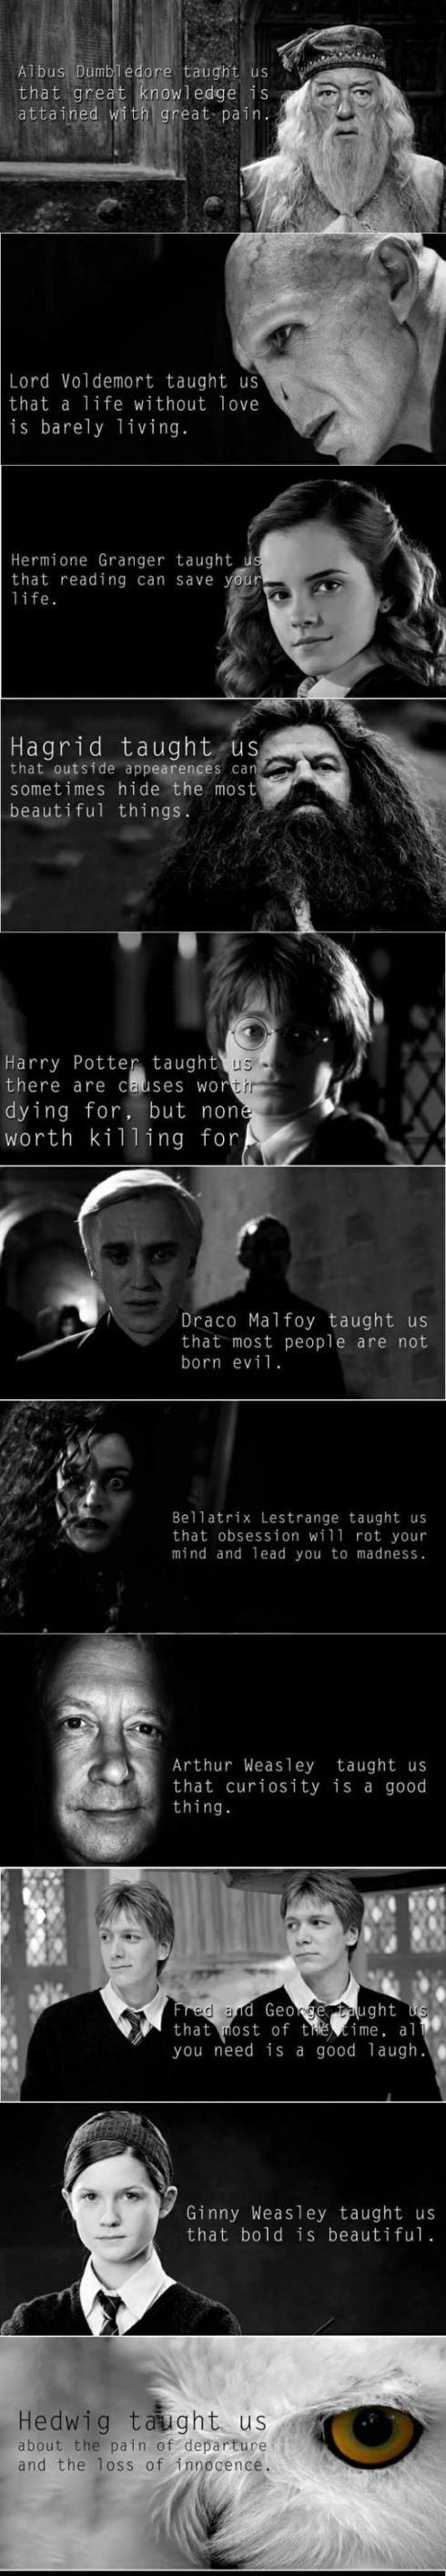 funny-Harry-Potter-teach-us-characters